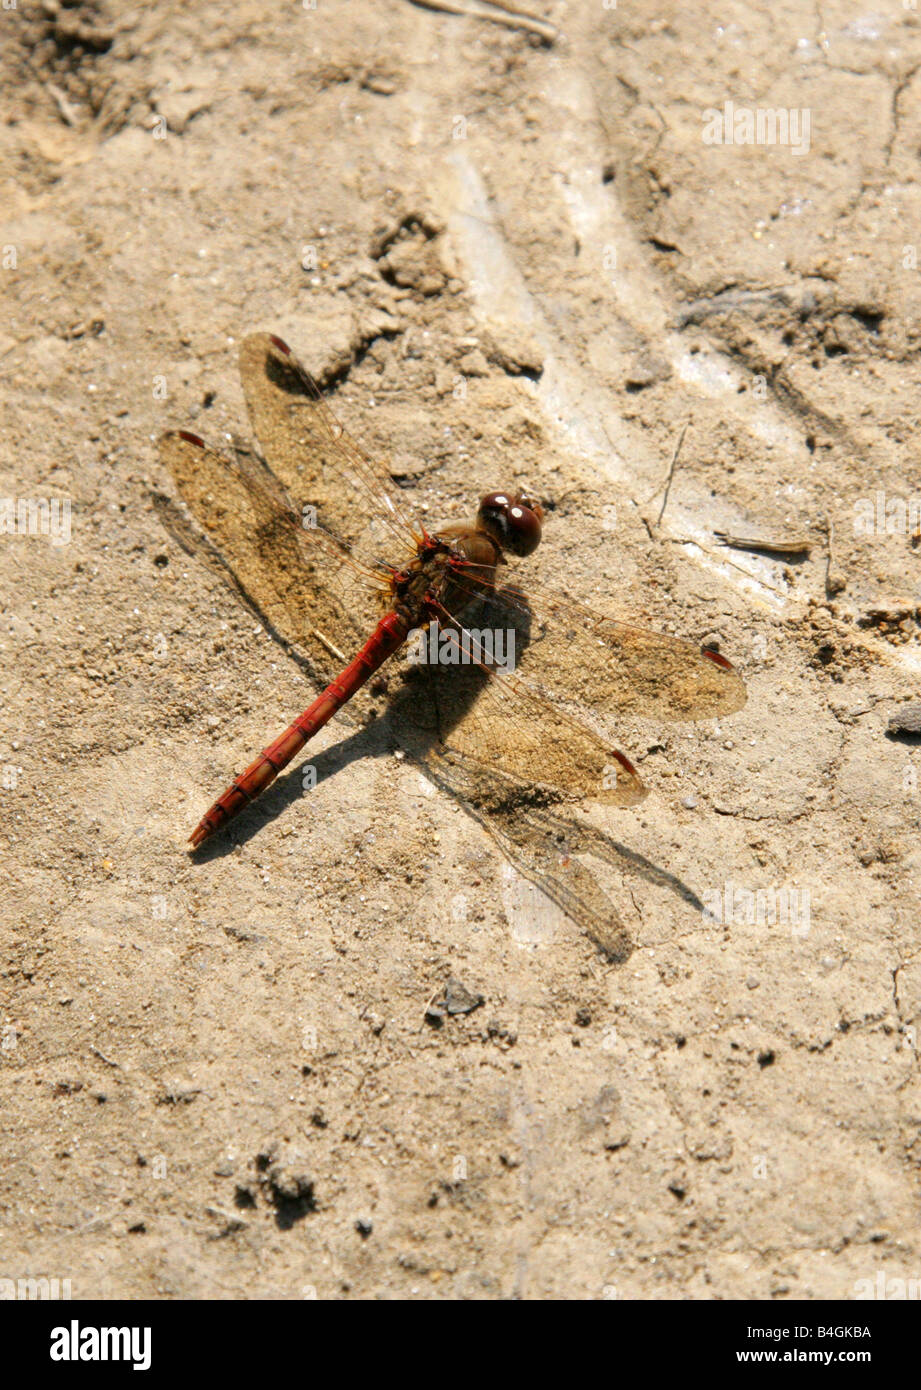 Common Darter Dragonfly Sympetrum striolatum, Anisoptera, Odonata Stock Photo